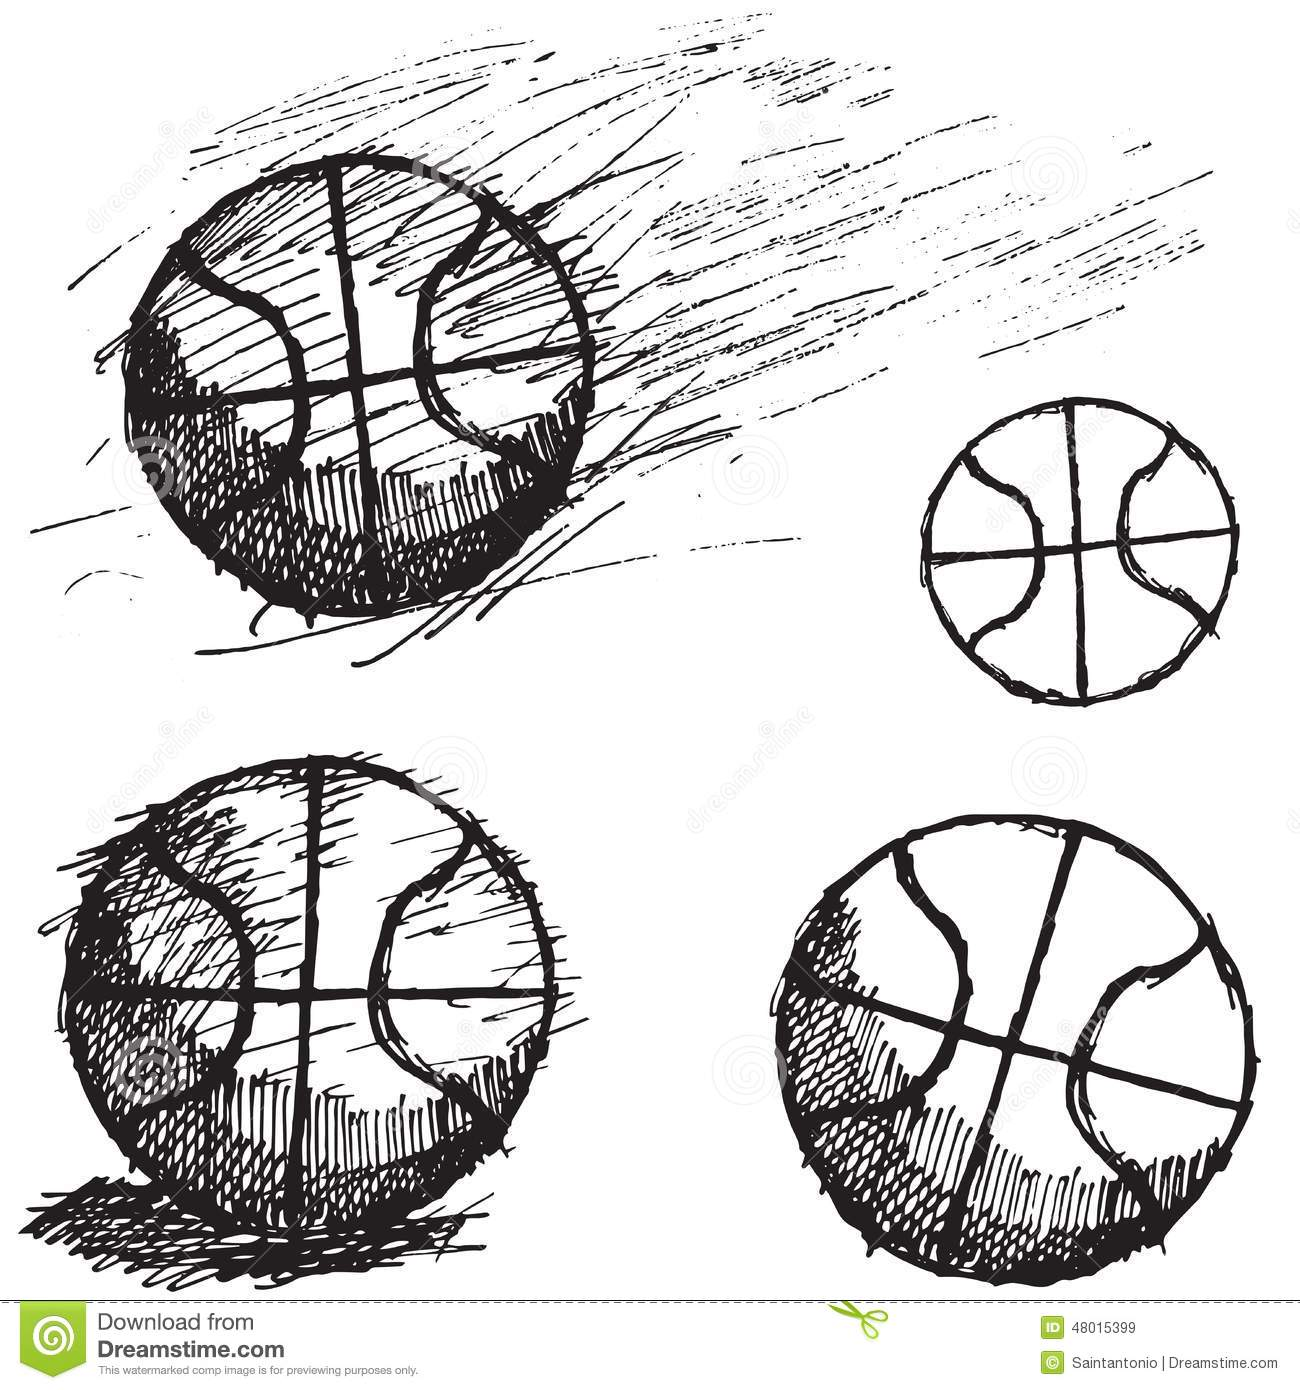 Basketball Ball Sketch Set Isolated On White Background Stock Vector - Image 48015399